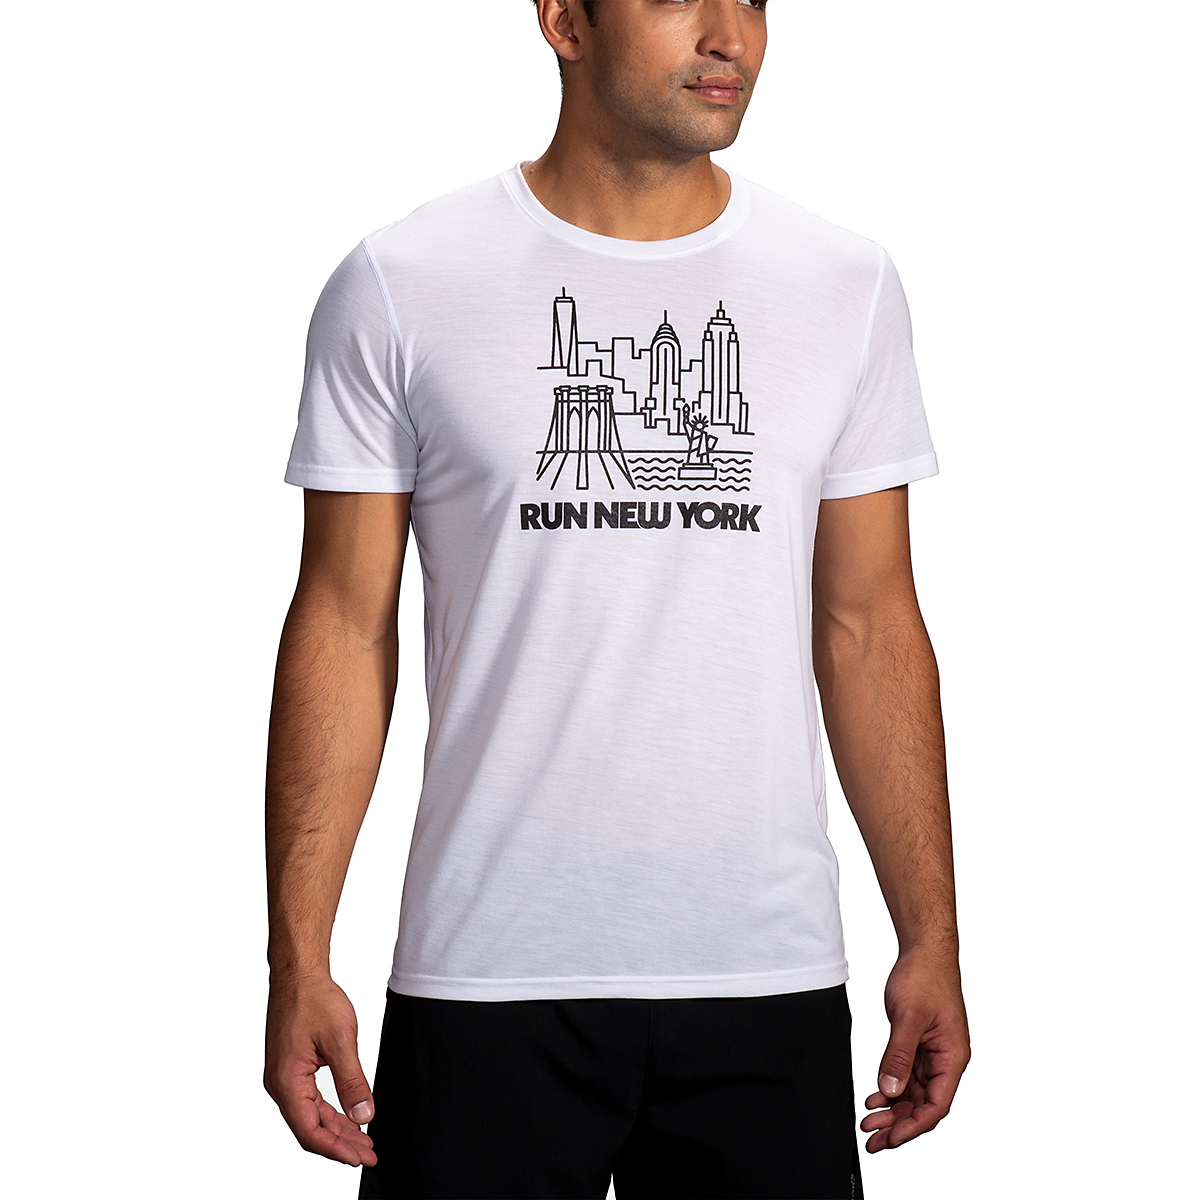 Men's Brooks Distance Graphic Tee  - Color: White/Run Nyc - Size: S, White/Run Nyc, large, image 1